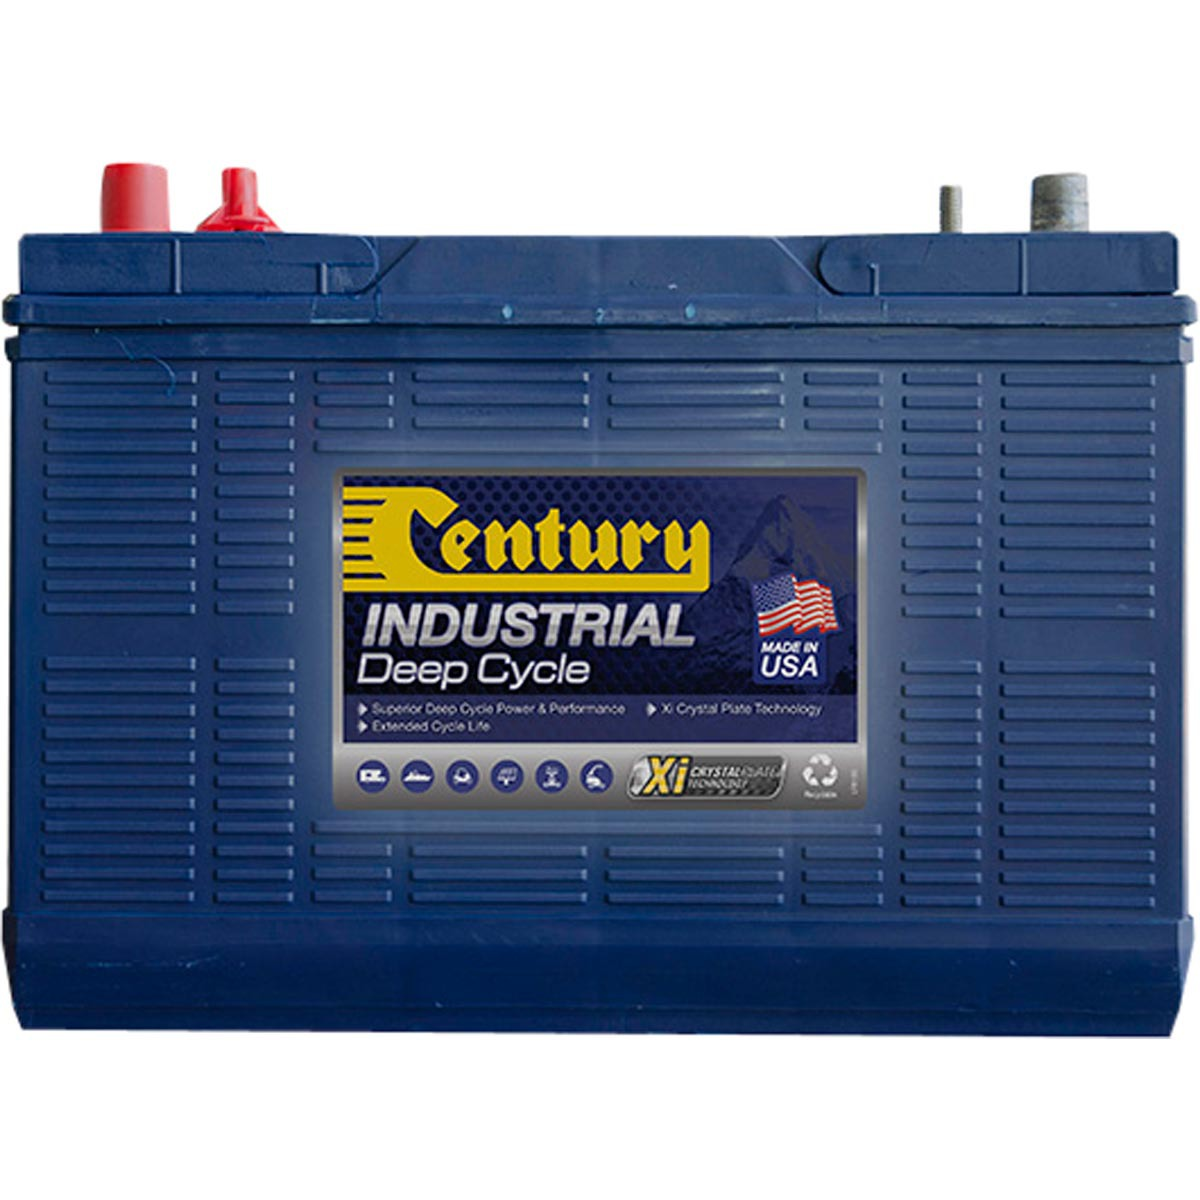 Century Deep Cycle Battery 12v 130Ah